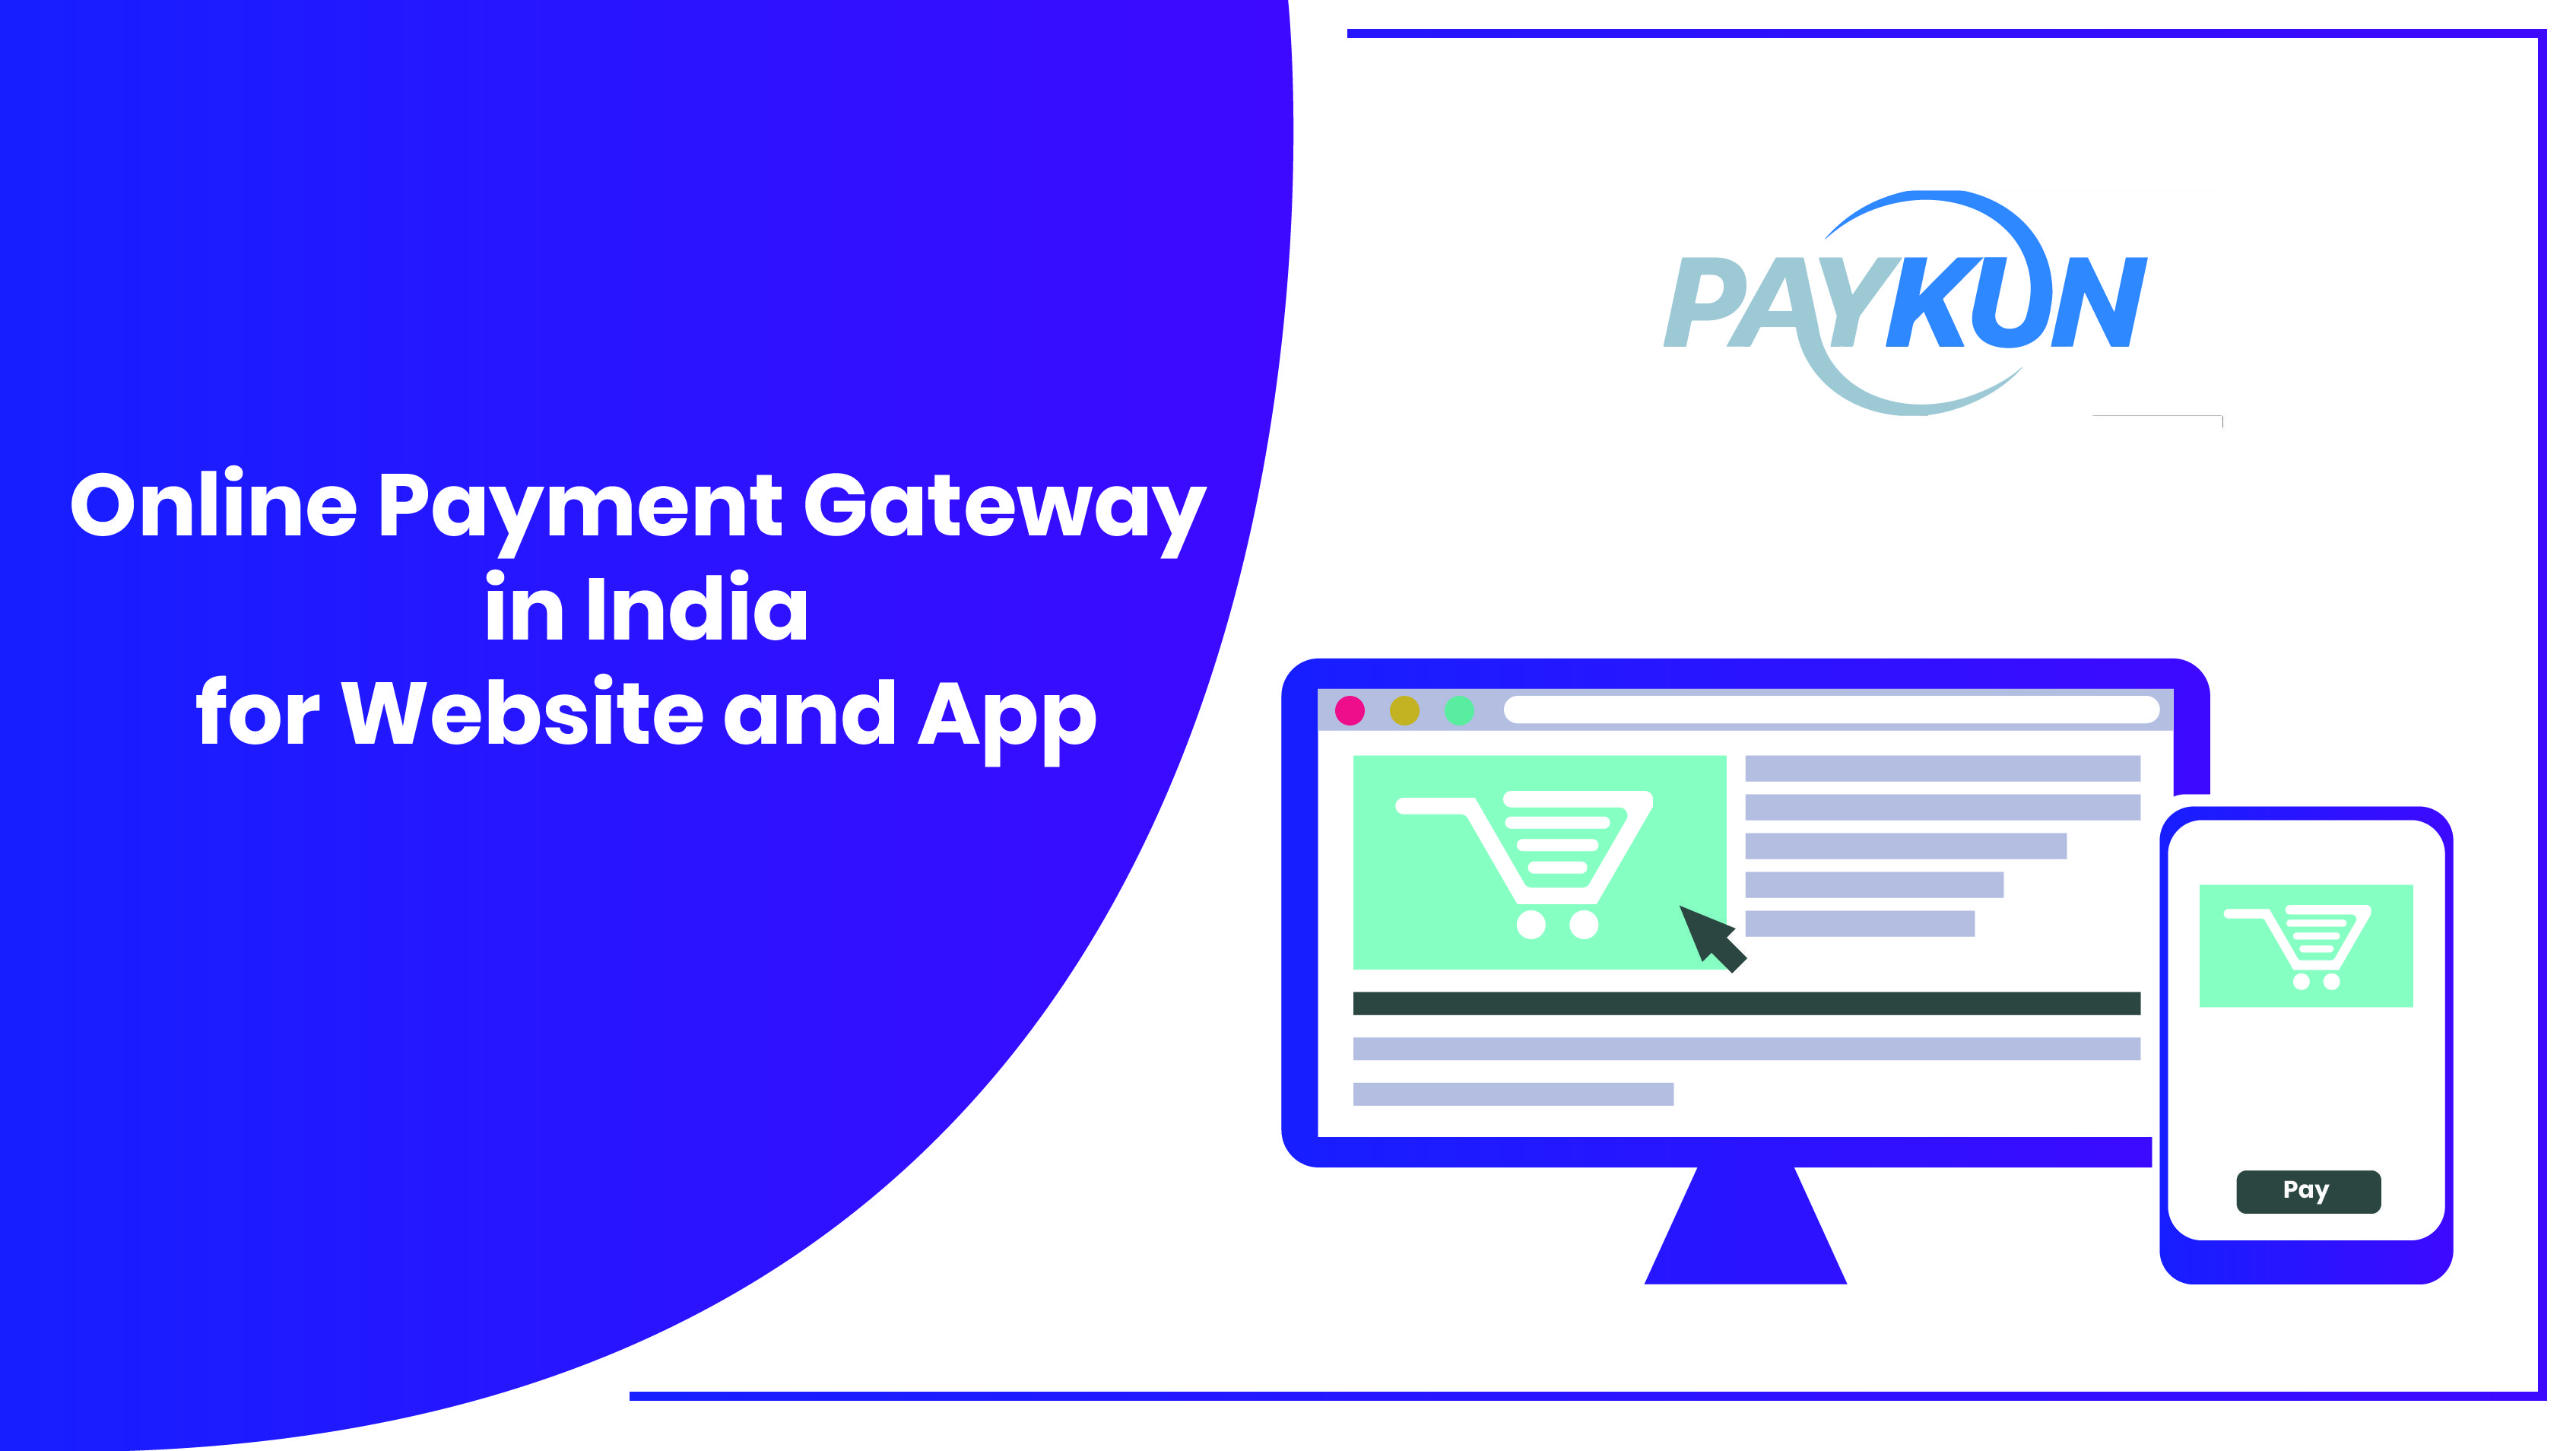 Online Payment Gateway in India for website and App in